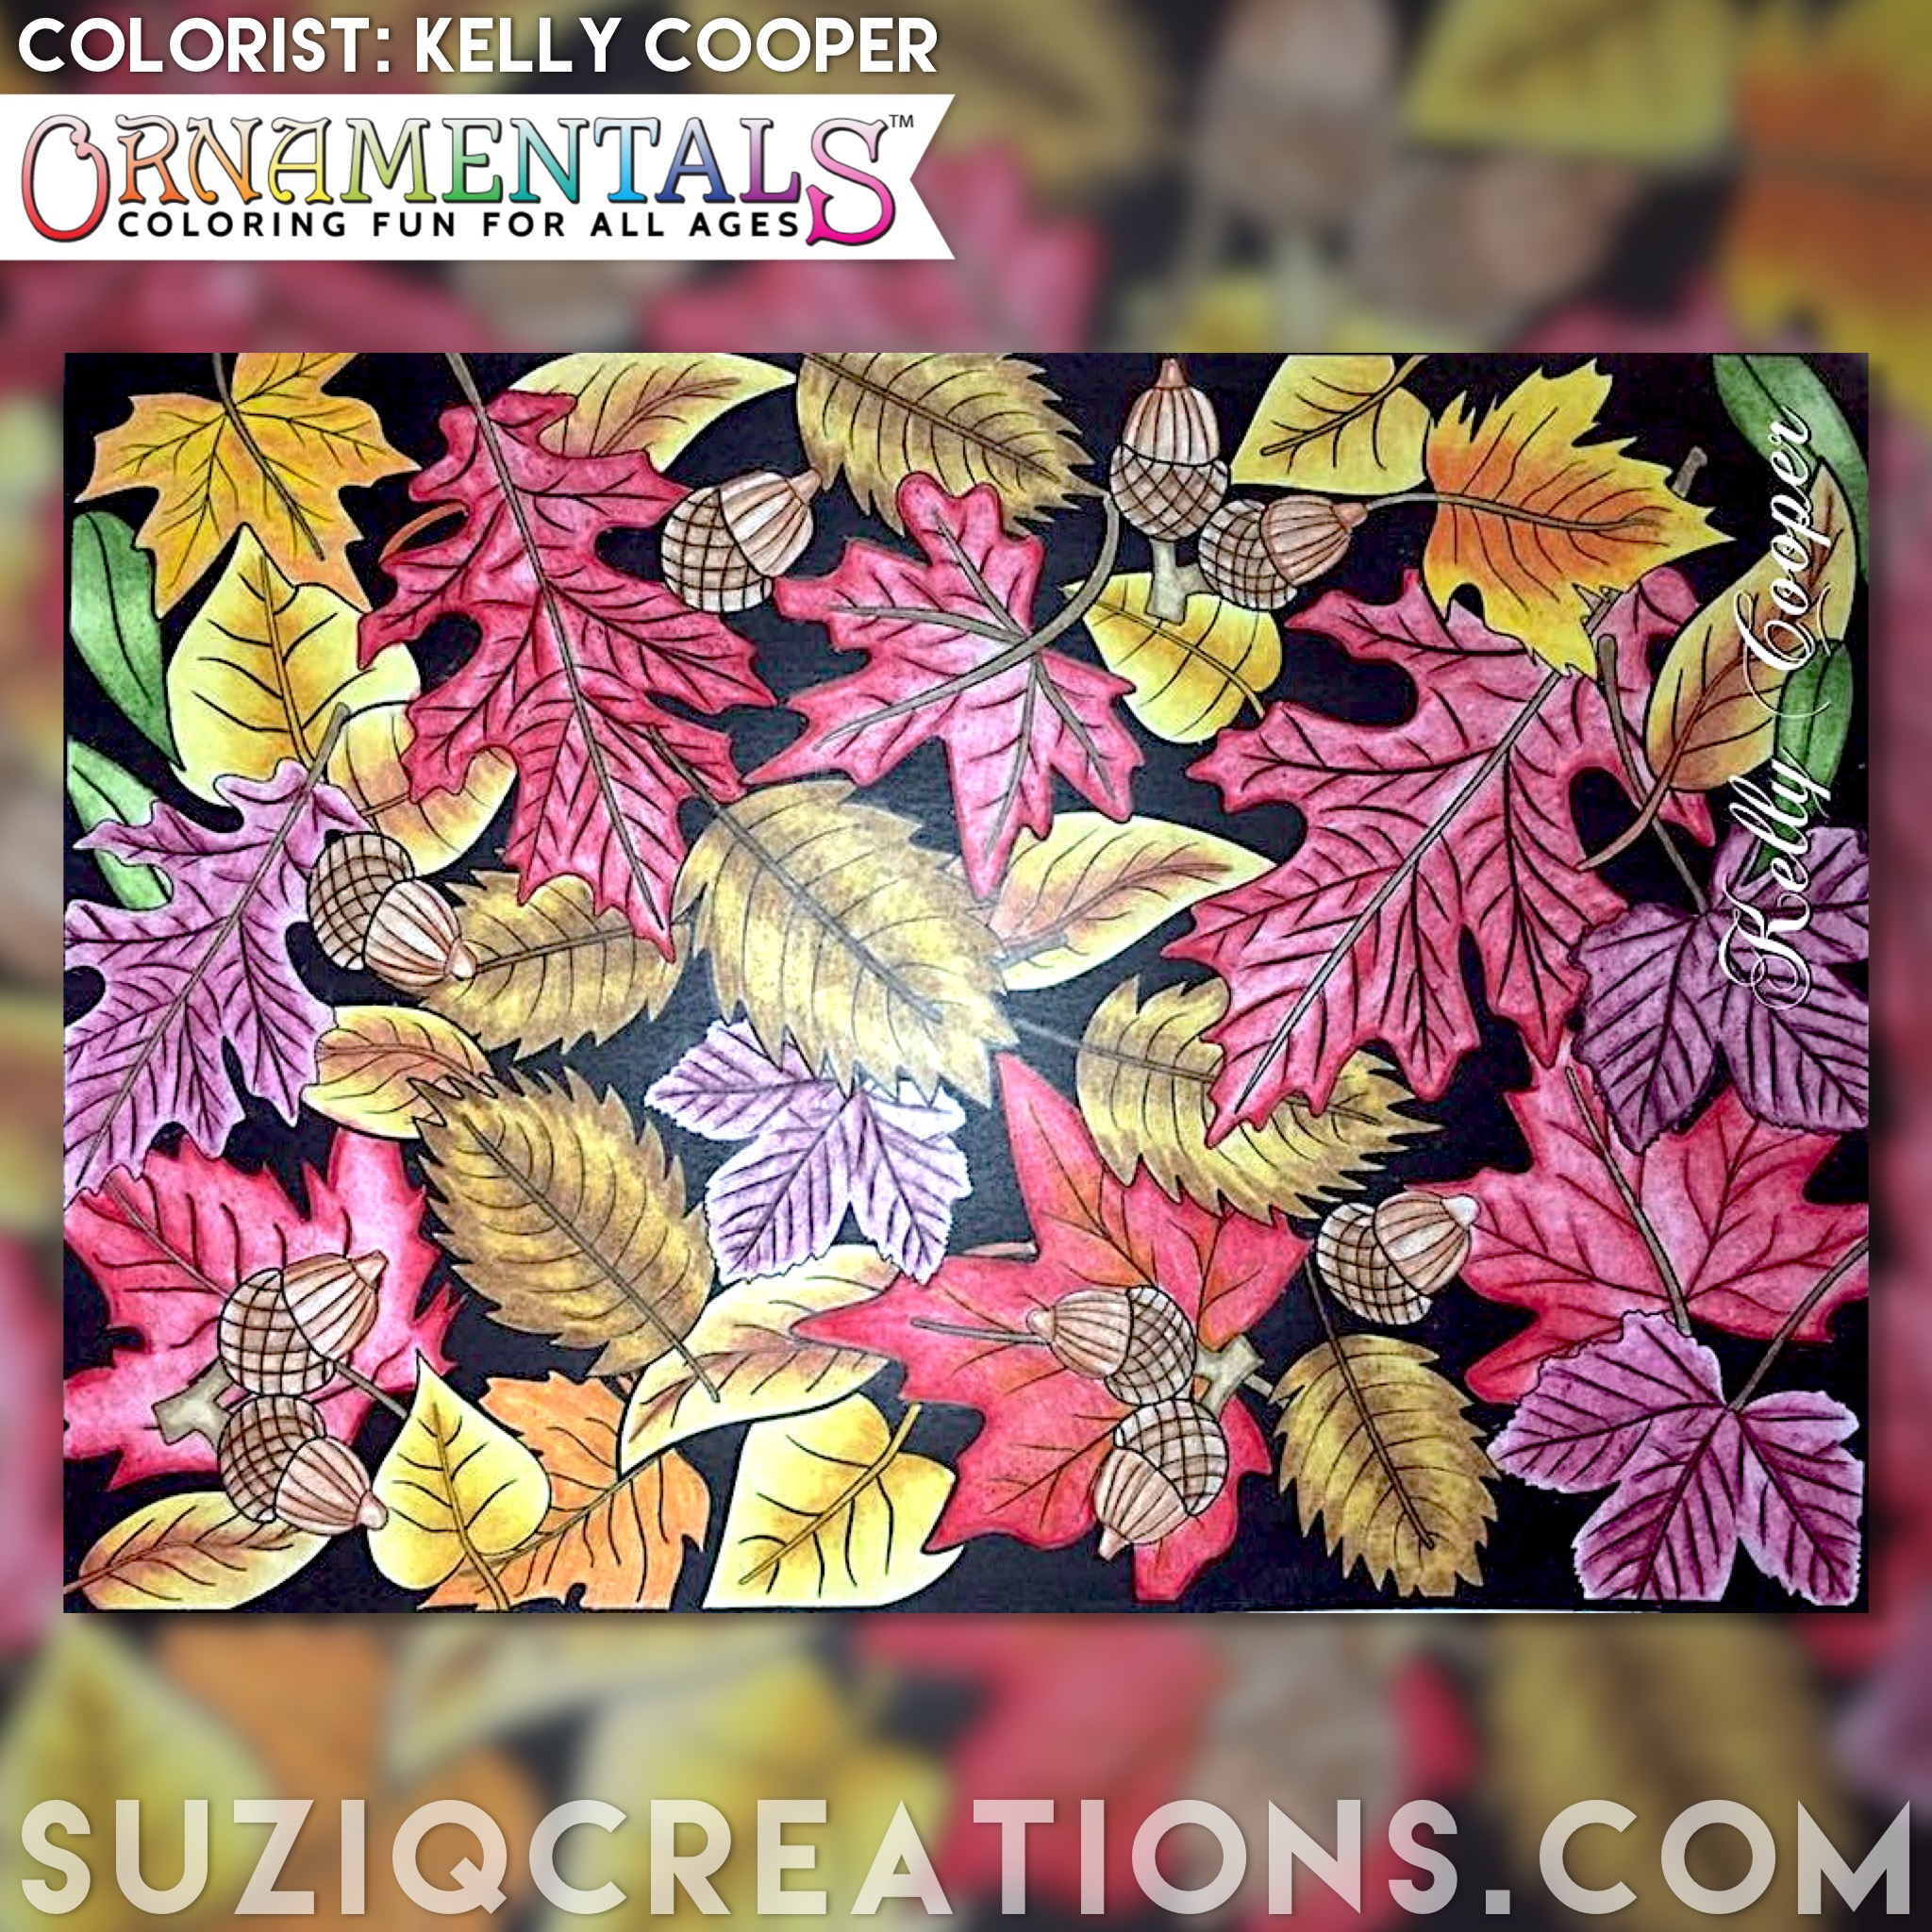 "From <i><a href=""http://www.suziqcreations.com/loa/"">OrnaMENTALs Lights Out</a></i> - colorist Kelly Cooper."